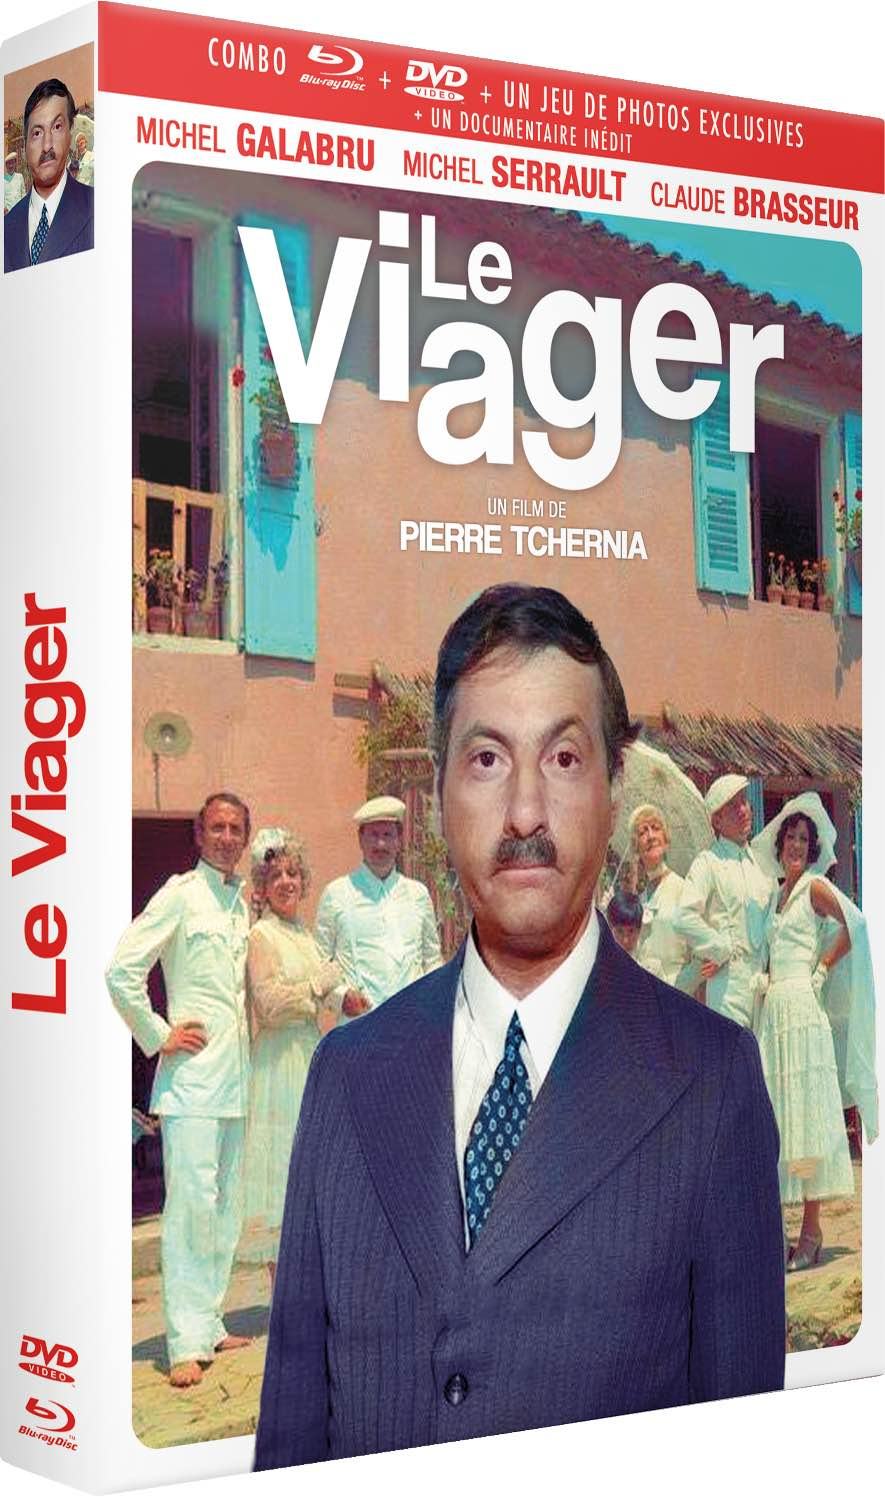 Le Viager - Combo Blu-ray + DVD